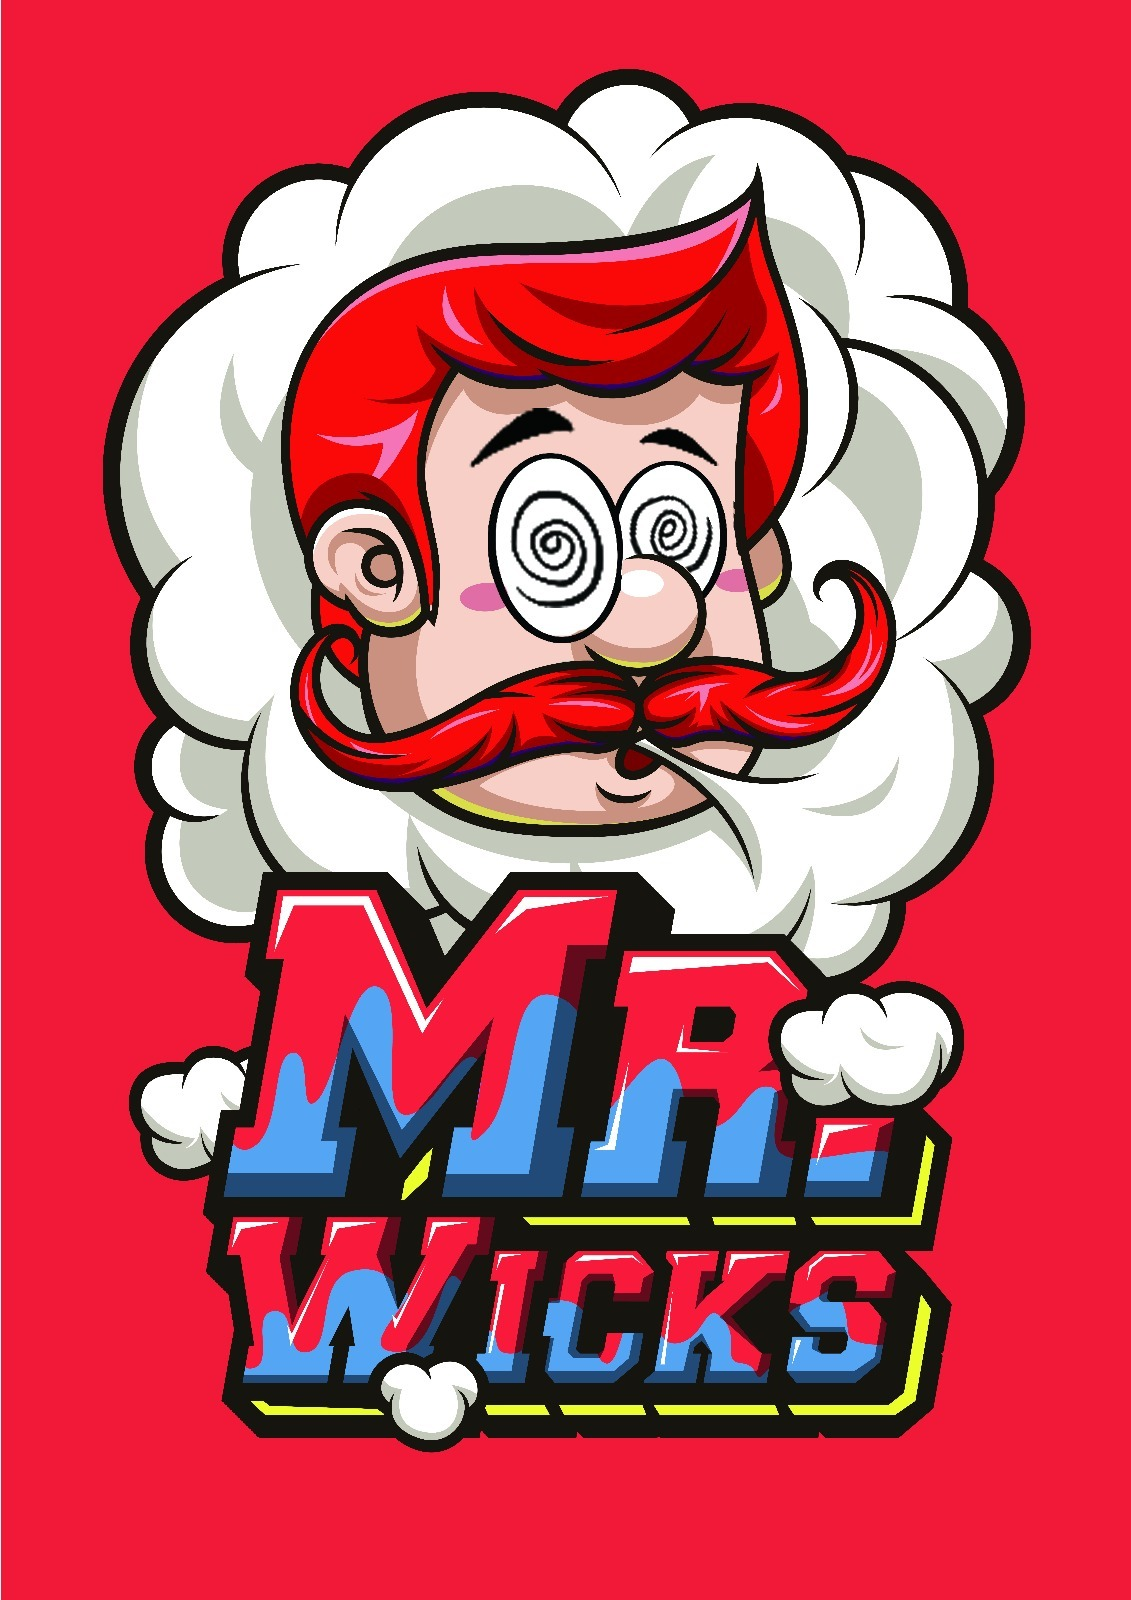 MoMo - Mr. Wicks